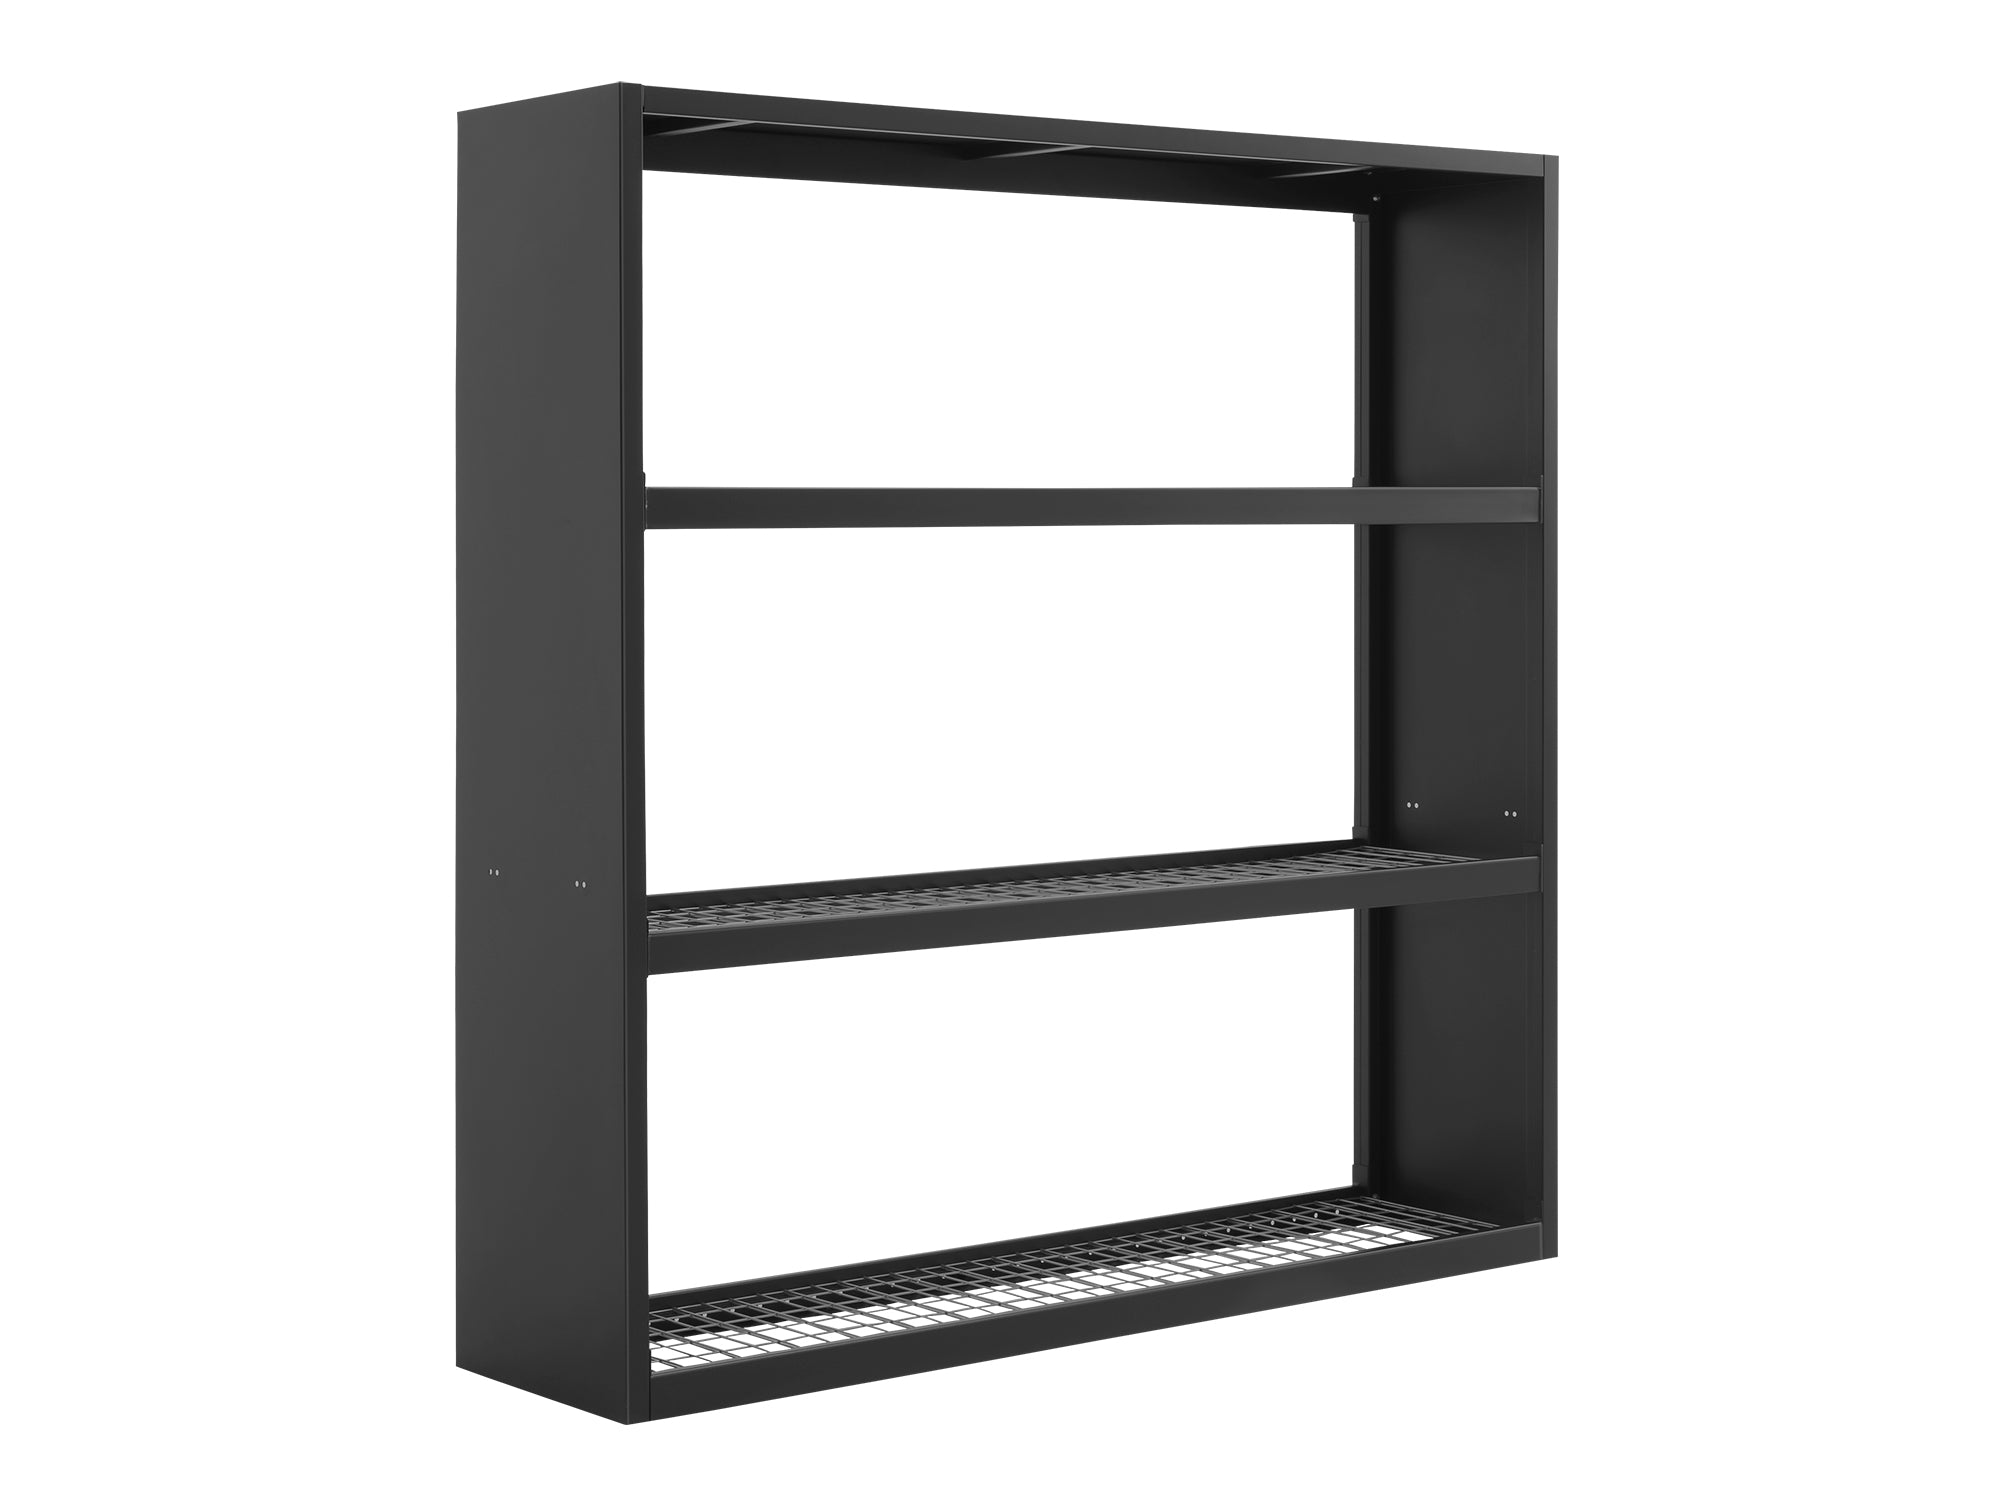 Bold Series 72 in. Wall Mounted Rack - Black}}